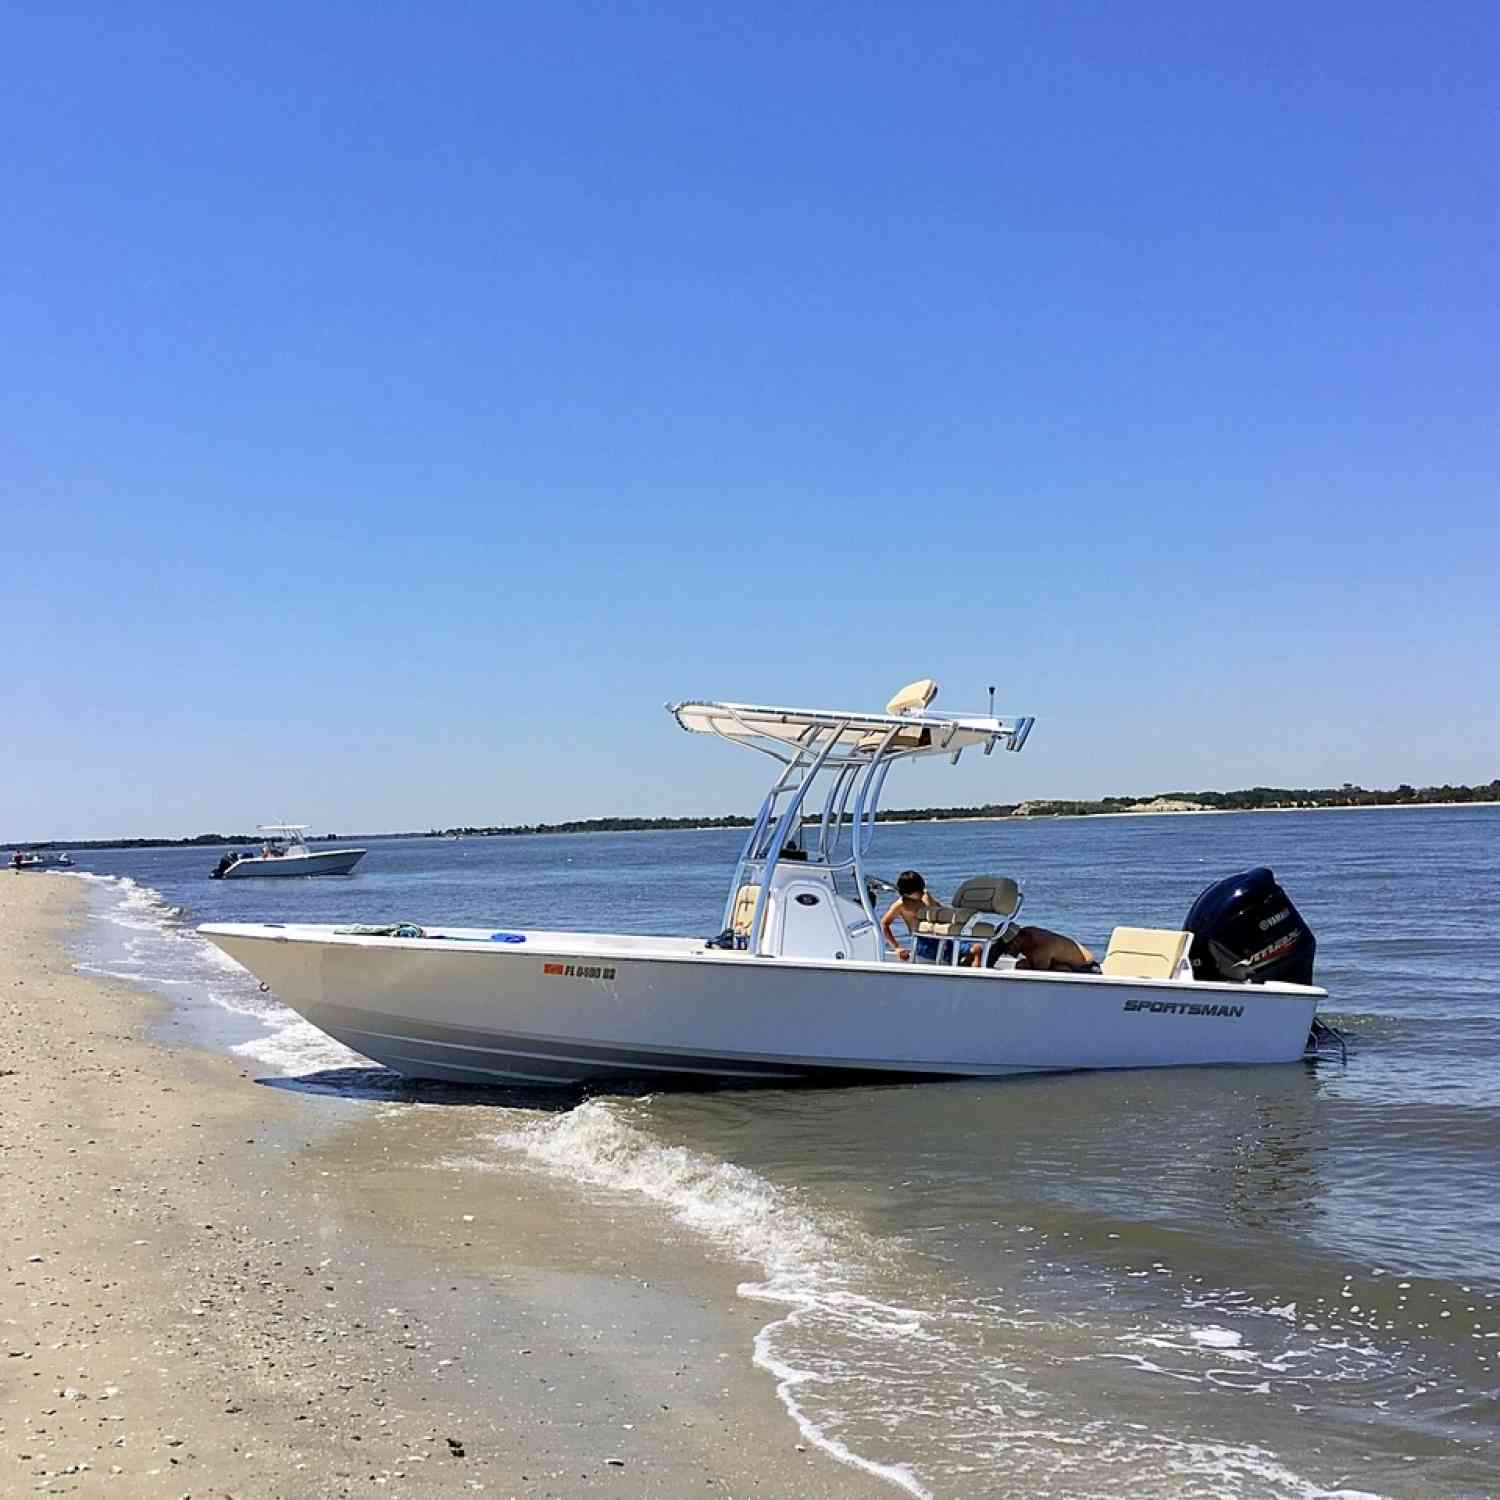 Title: Beached - On board their Sportsman Masters 247 Bay Boat - Location: Jax FL. Participating in the Photo Contest #SportsmanOctober2020